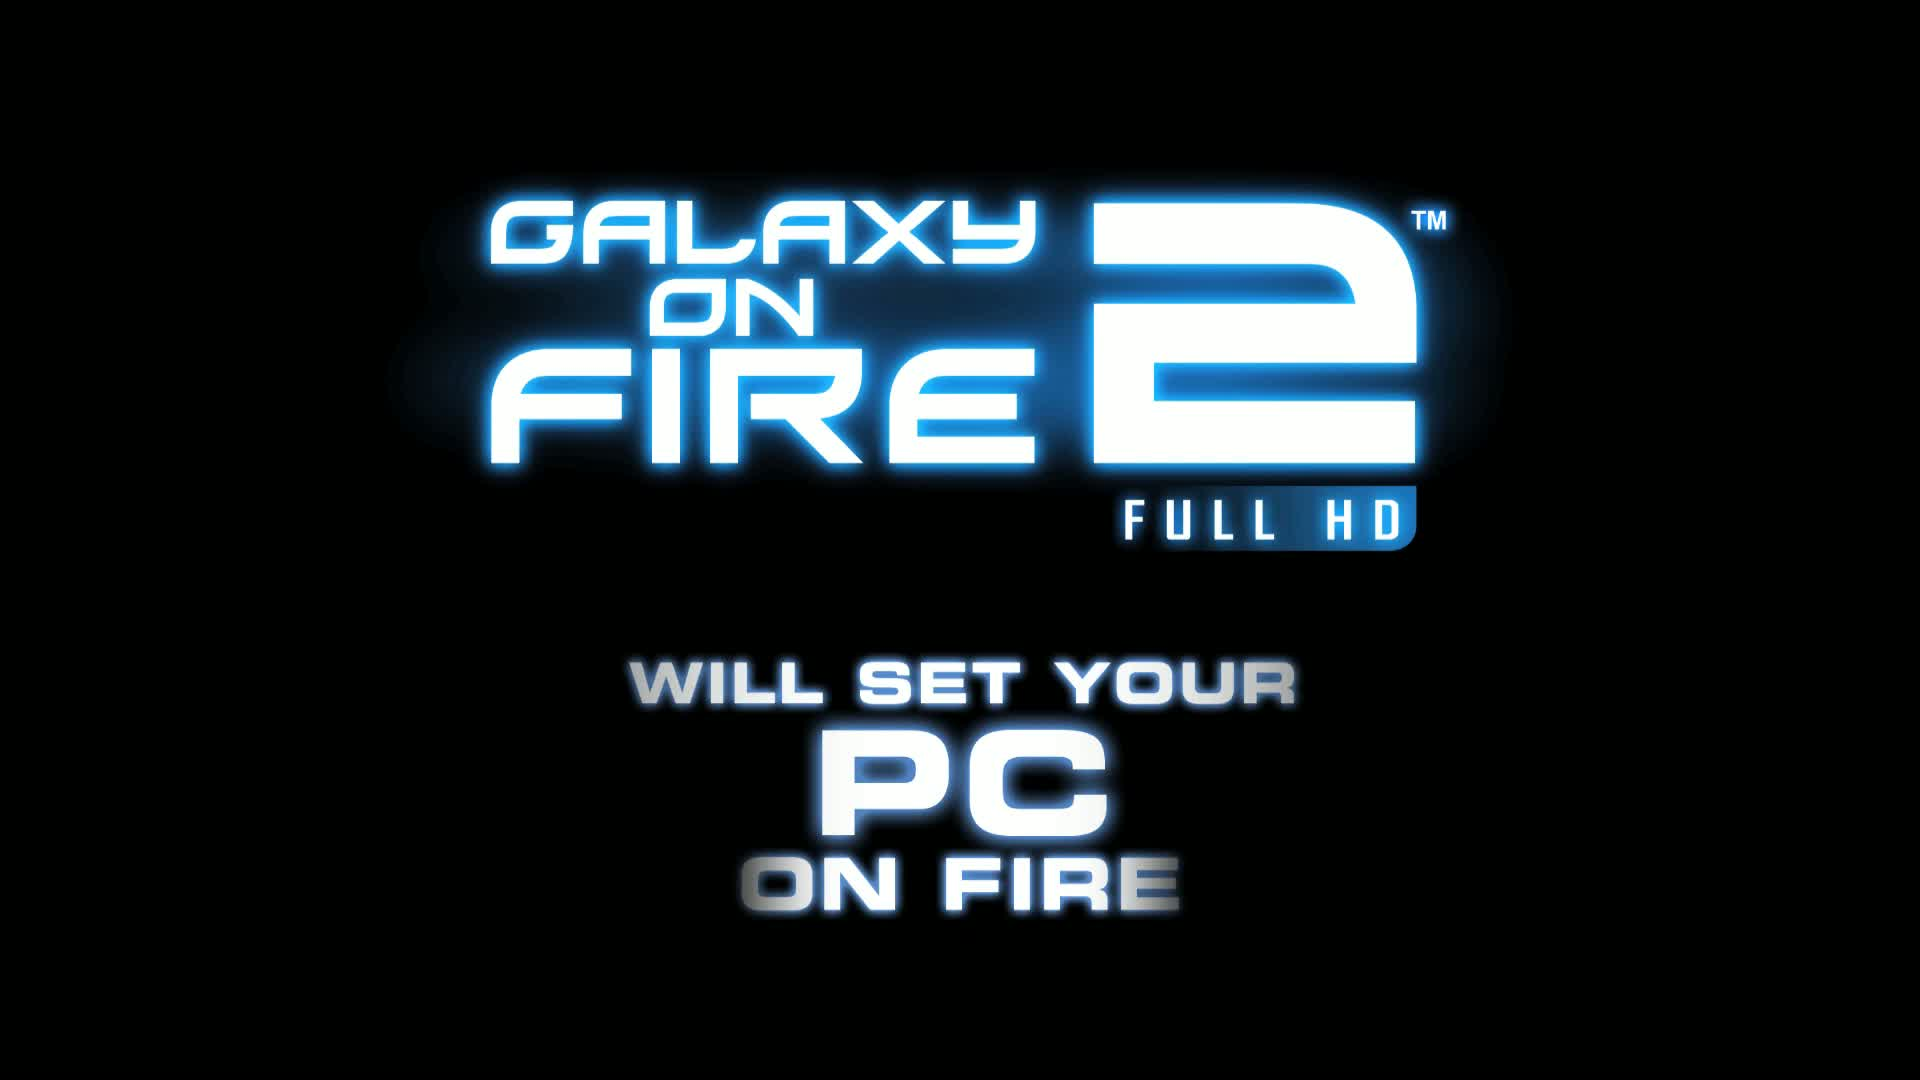 Galaxy on Fire 2 Full HD  Videos and Trailers